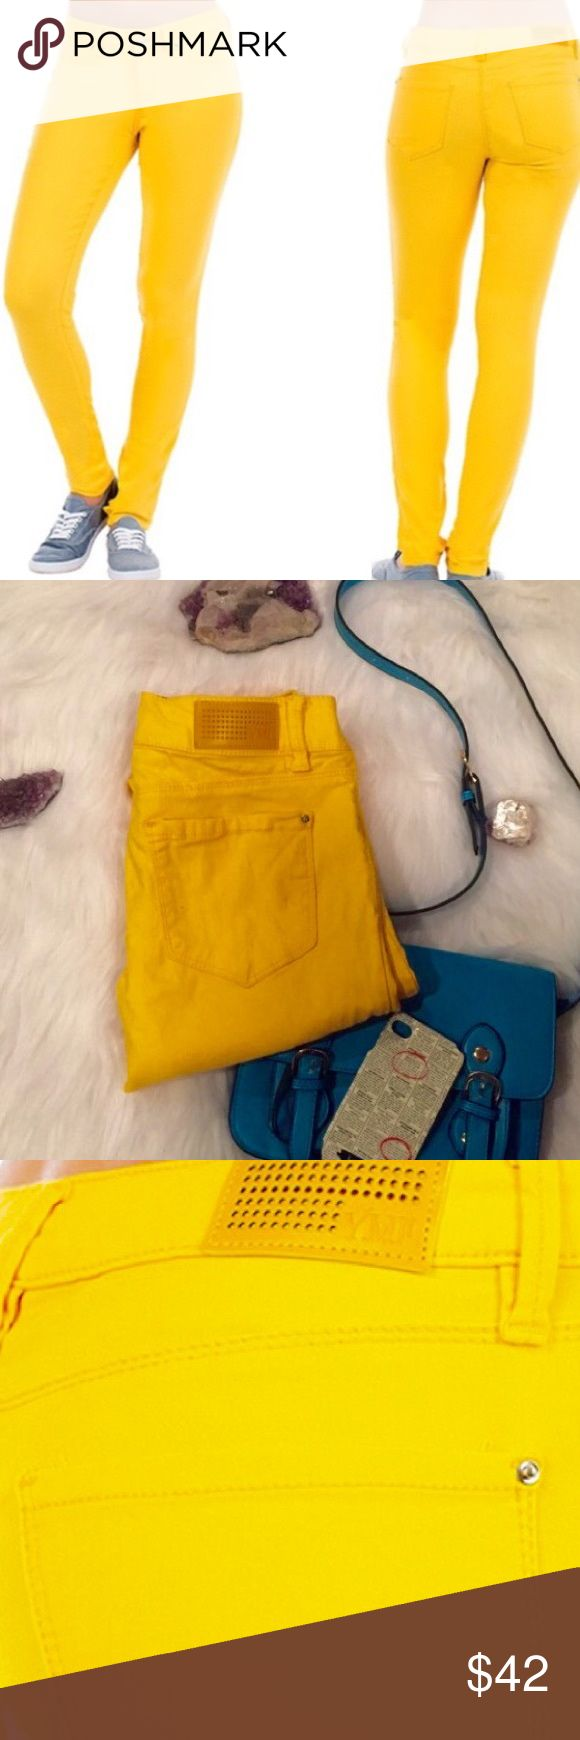 🍋YMI Bright Yellow Skinny Jeans🍋 Brighten your day by wearing these happy bright yellow skinny jeans. One of the most stretchy and comfortable pants on planet earth . Fitted to contour to your body to make you feel like you are wearing super soft and stretchy leggings.  Size small & approx 31 inseam.  Like NEW!  Purchased from local boutique in SLC. YMI Jeans Skinny